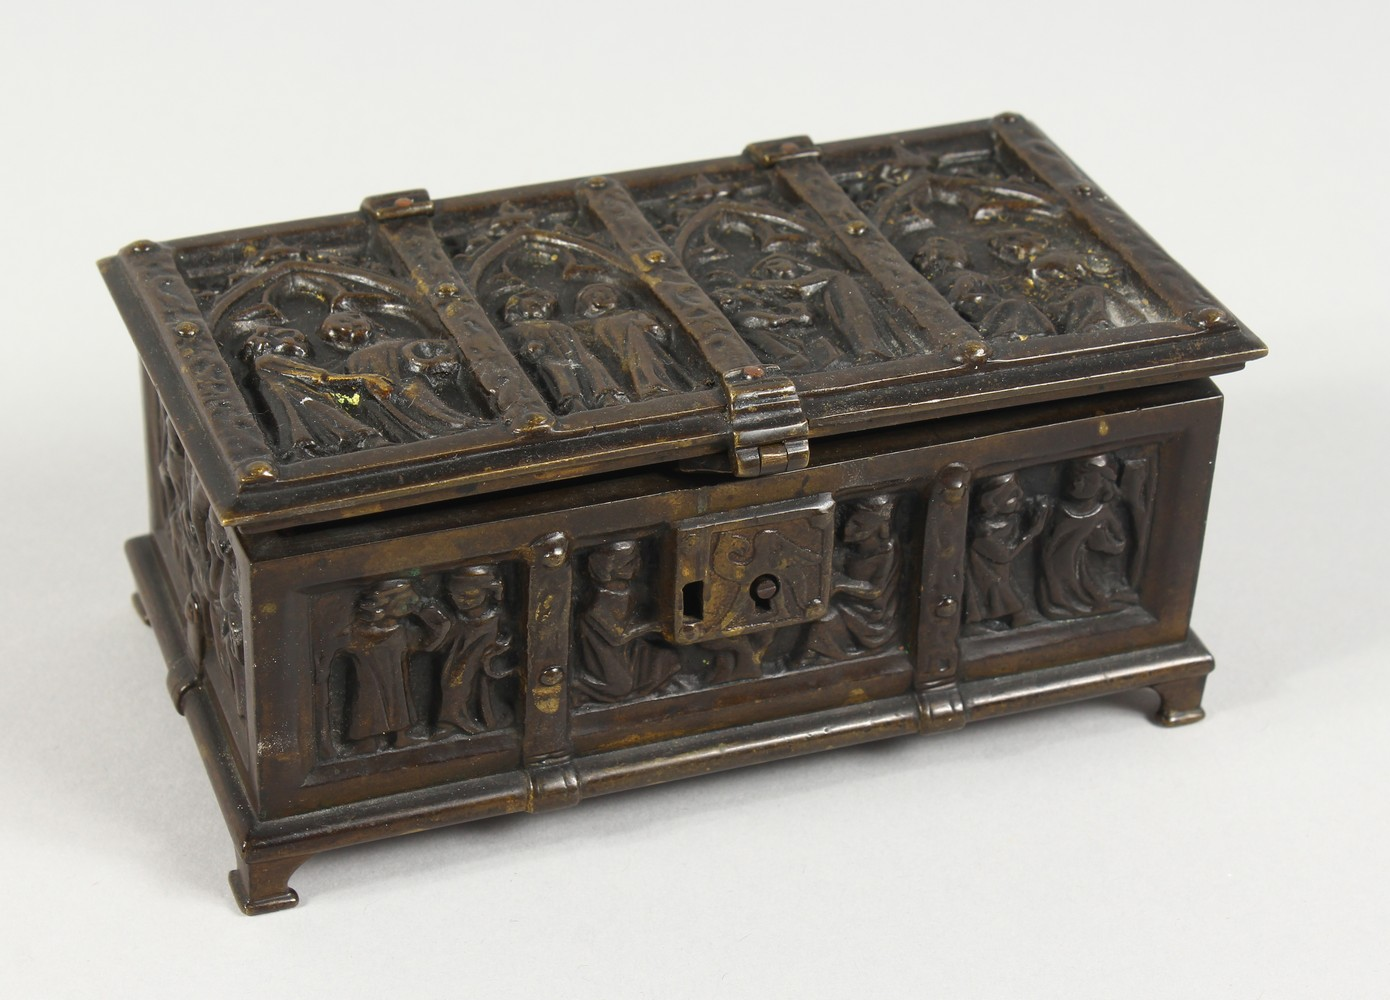 A MINIATURE BRONZE CHEST in the renaissance style. 5.5ins long.